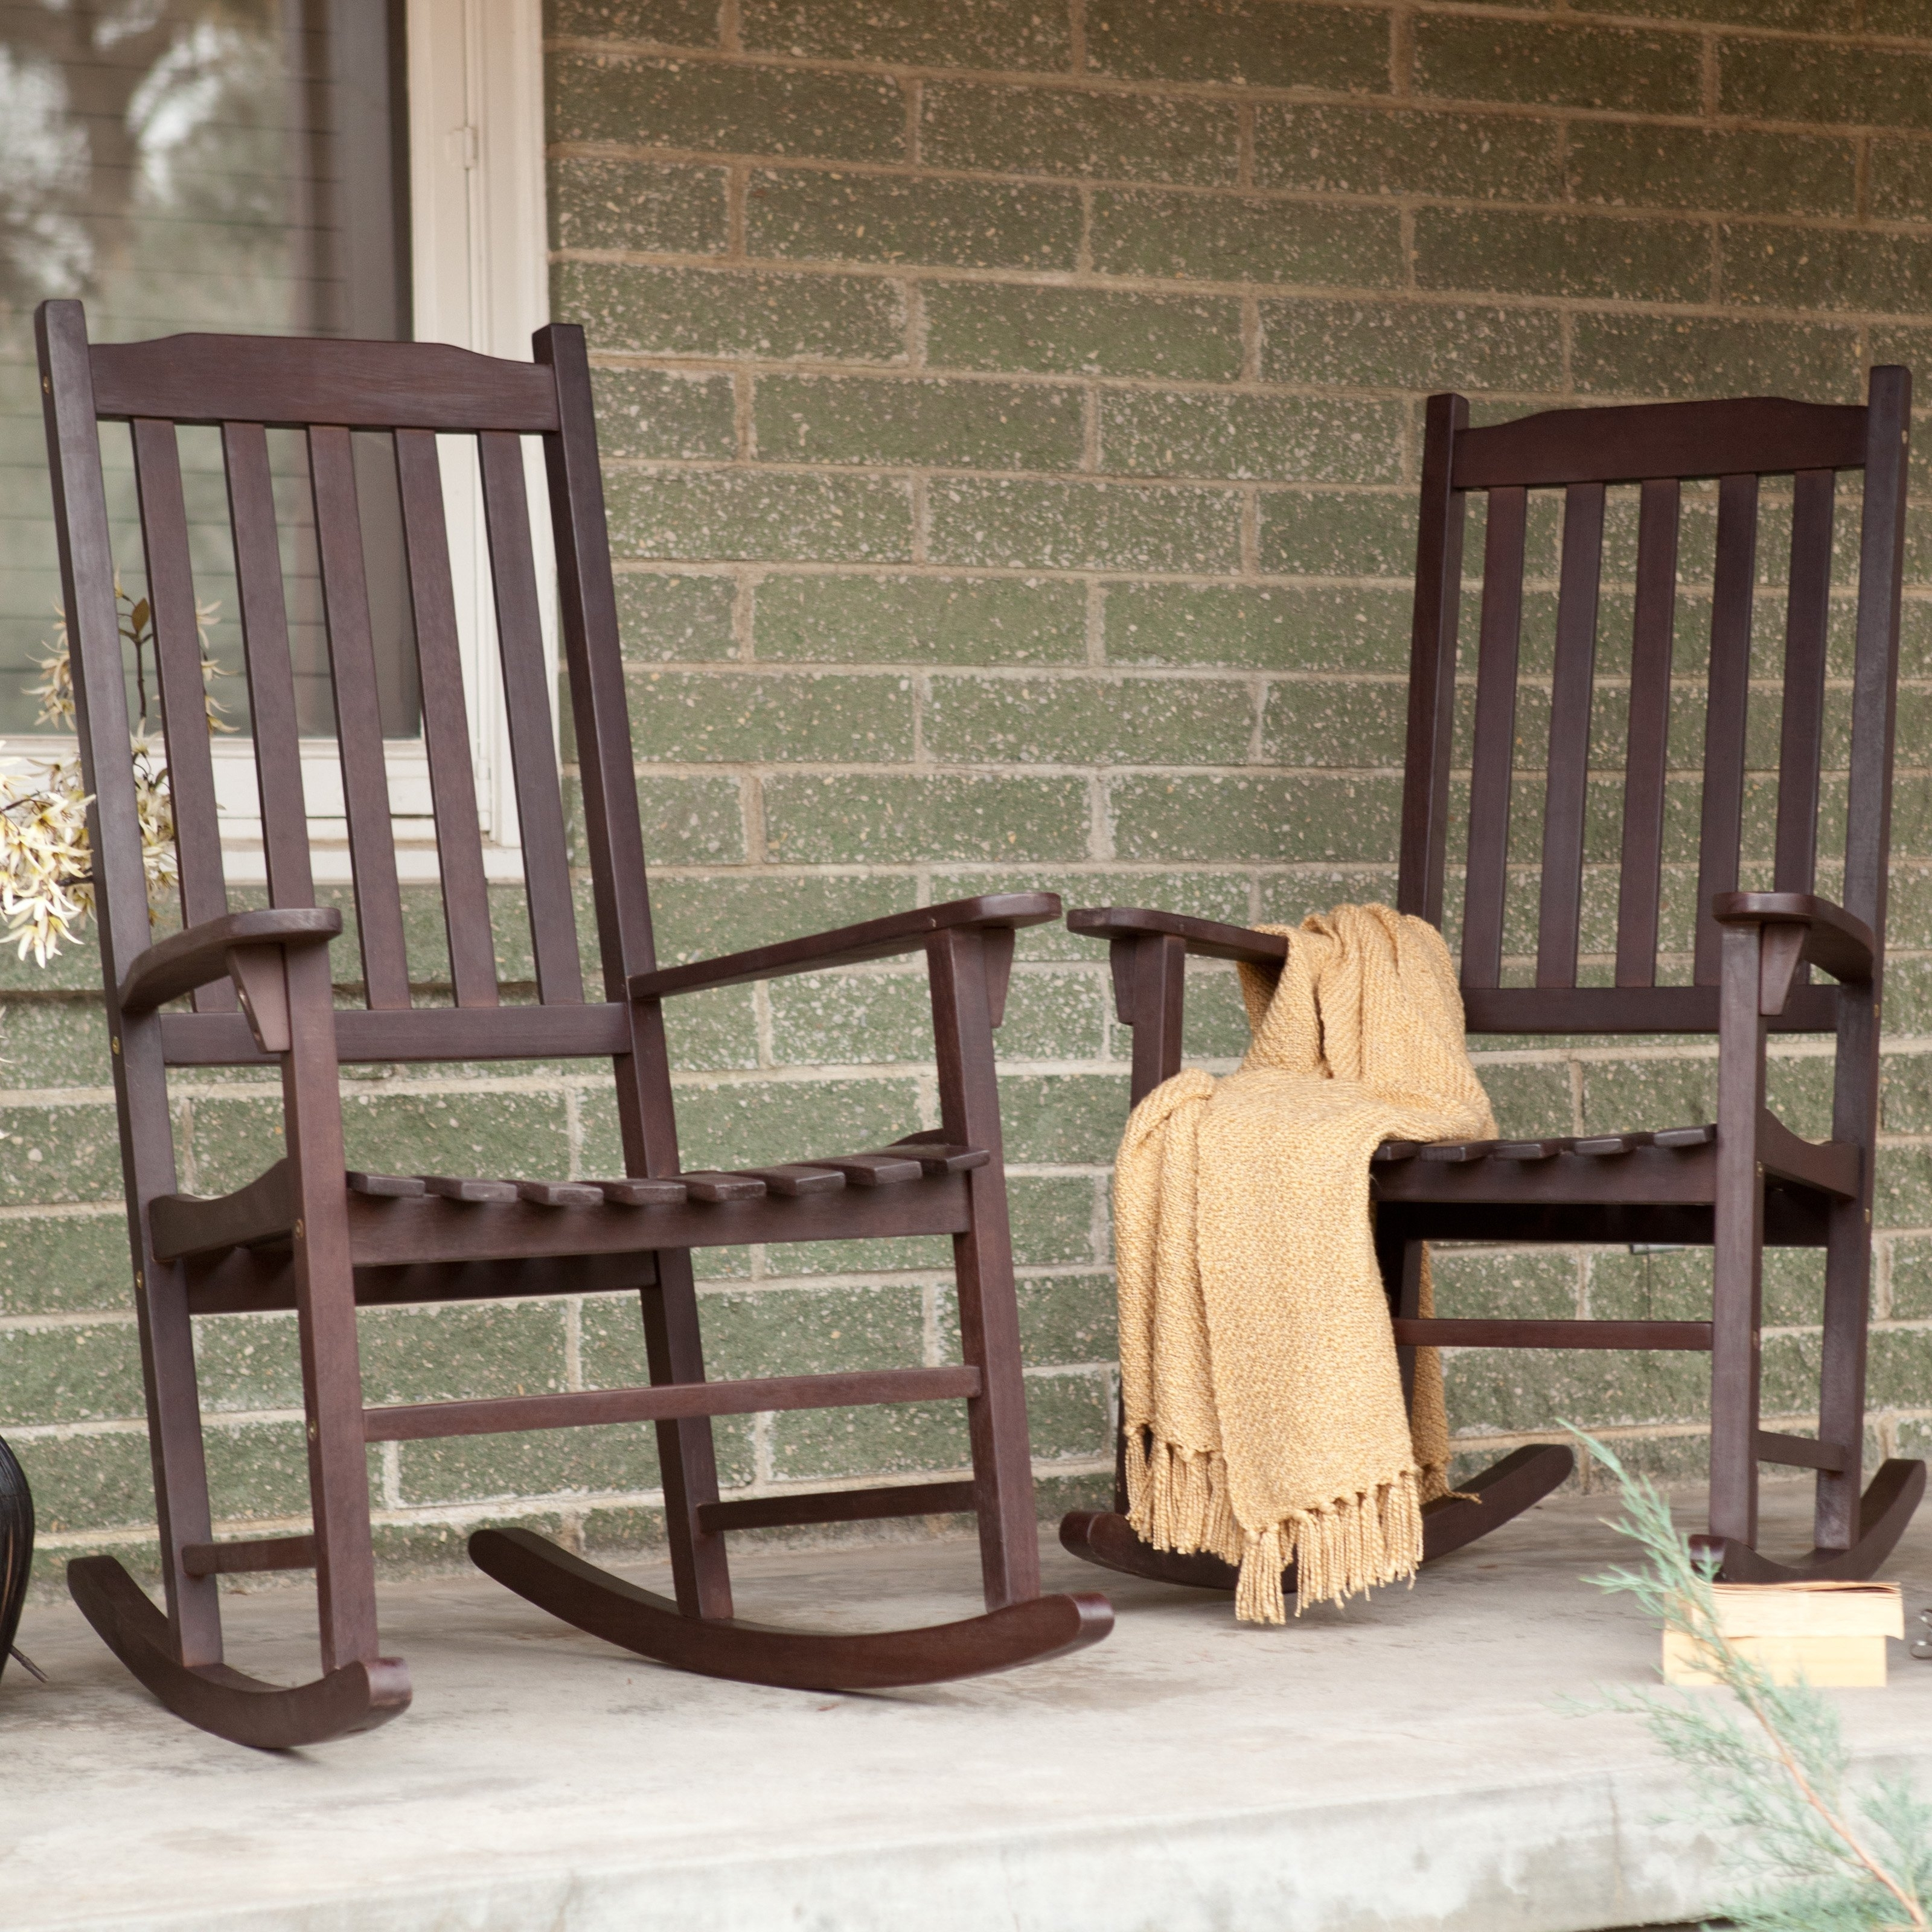 Favorite A Guide To Find The Right Outdoor Rocking Chair For Your House Throughout Outdoor Patio Rocking Chairs (View 2 of 15)